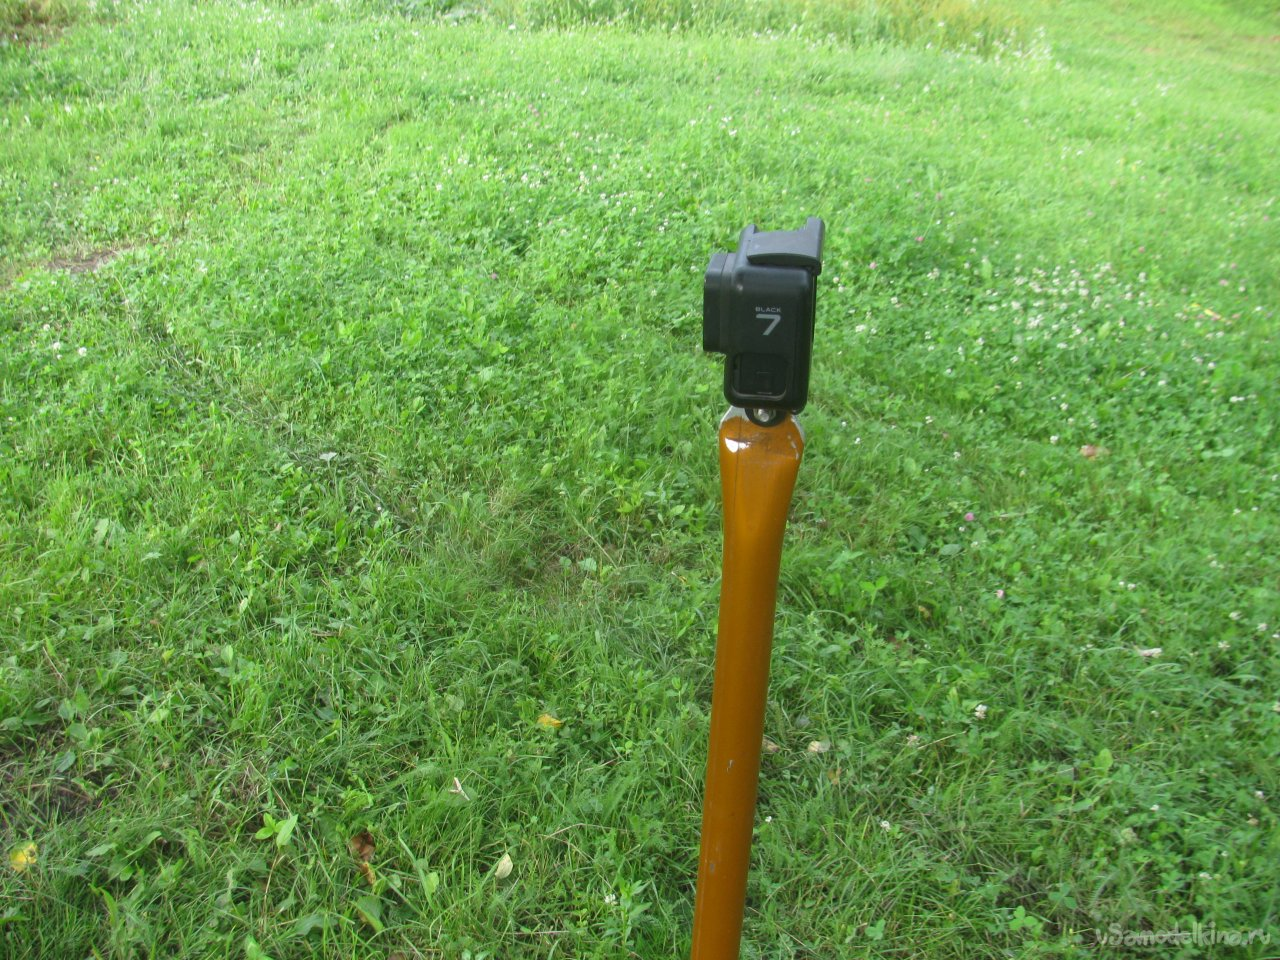 Well, a very simple tripod/stand for GoPro